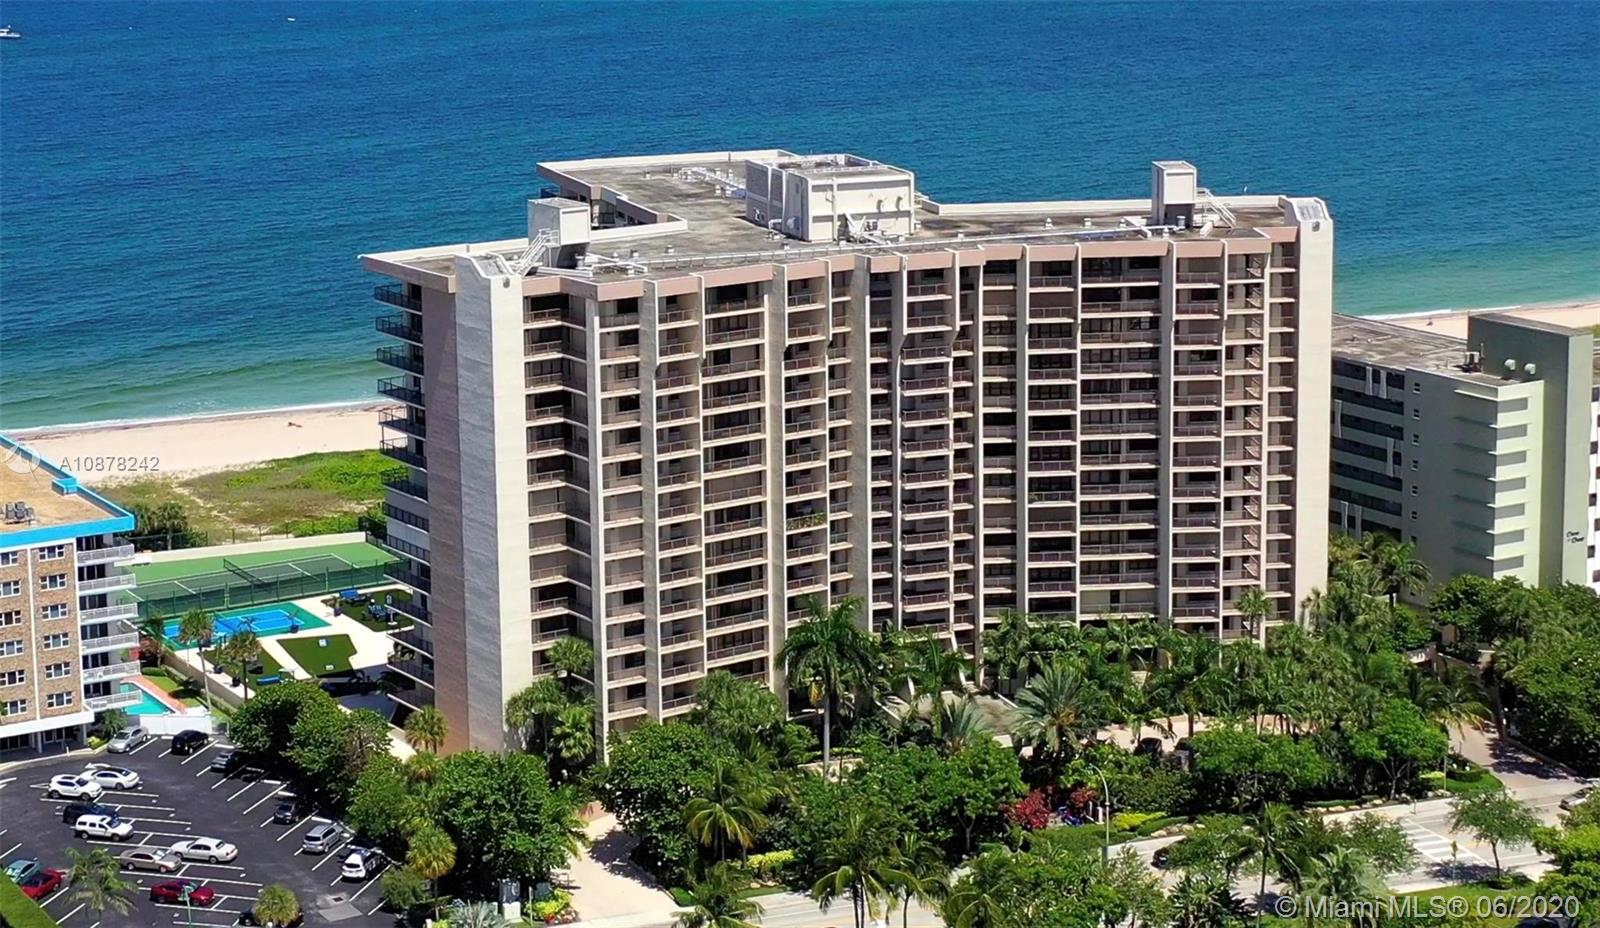 Positioned on the northern end of Lauderdale by the Sea is the exclusive Hampton Beach Club.  Unit 410 is a sprawling 3507 square foot direct oceanfront condo with many upmarket features today's homeowner demands. At every turn, you cannot help but notice the attention to detail. Custom woodwork, built-ins, & cabinetry are visible from one end to the other. All bedrooms feature en-suite bathrooms with walk-in showers & closets.  This magnificent property, sold fully furnished, is an ideal primary residence, second home, or rental property.  Hampton Beach Club features 24-hour security personnel in the main lobby. Ownership grants you access to an amenity package that makes your every day a vacation day. The oceanside pool, bocci, tennis, & pickleball courts are just a few of the amenities